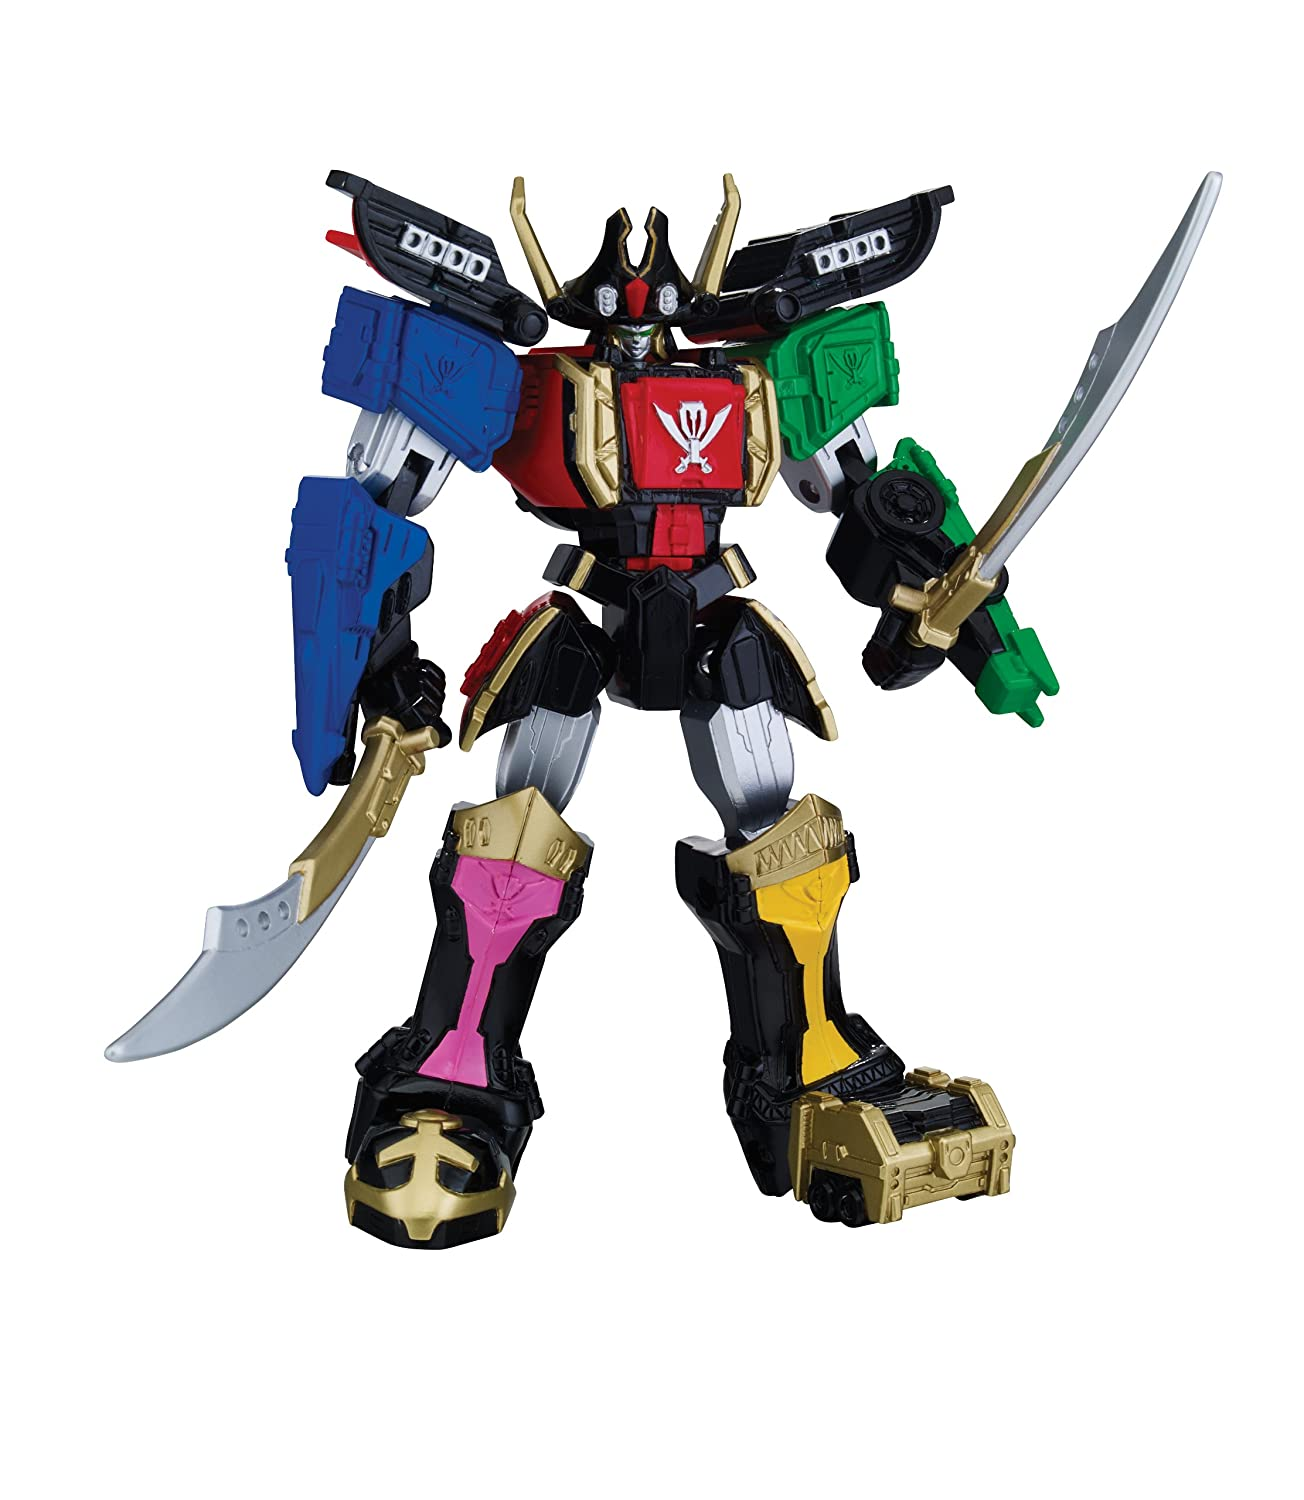 image gallery megaforce megazord. Black Bedroom Furniture Sets. Home Design Ideas